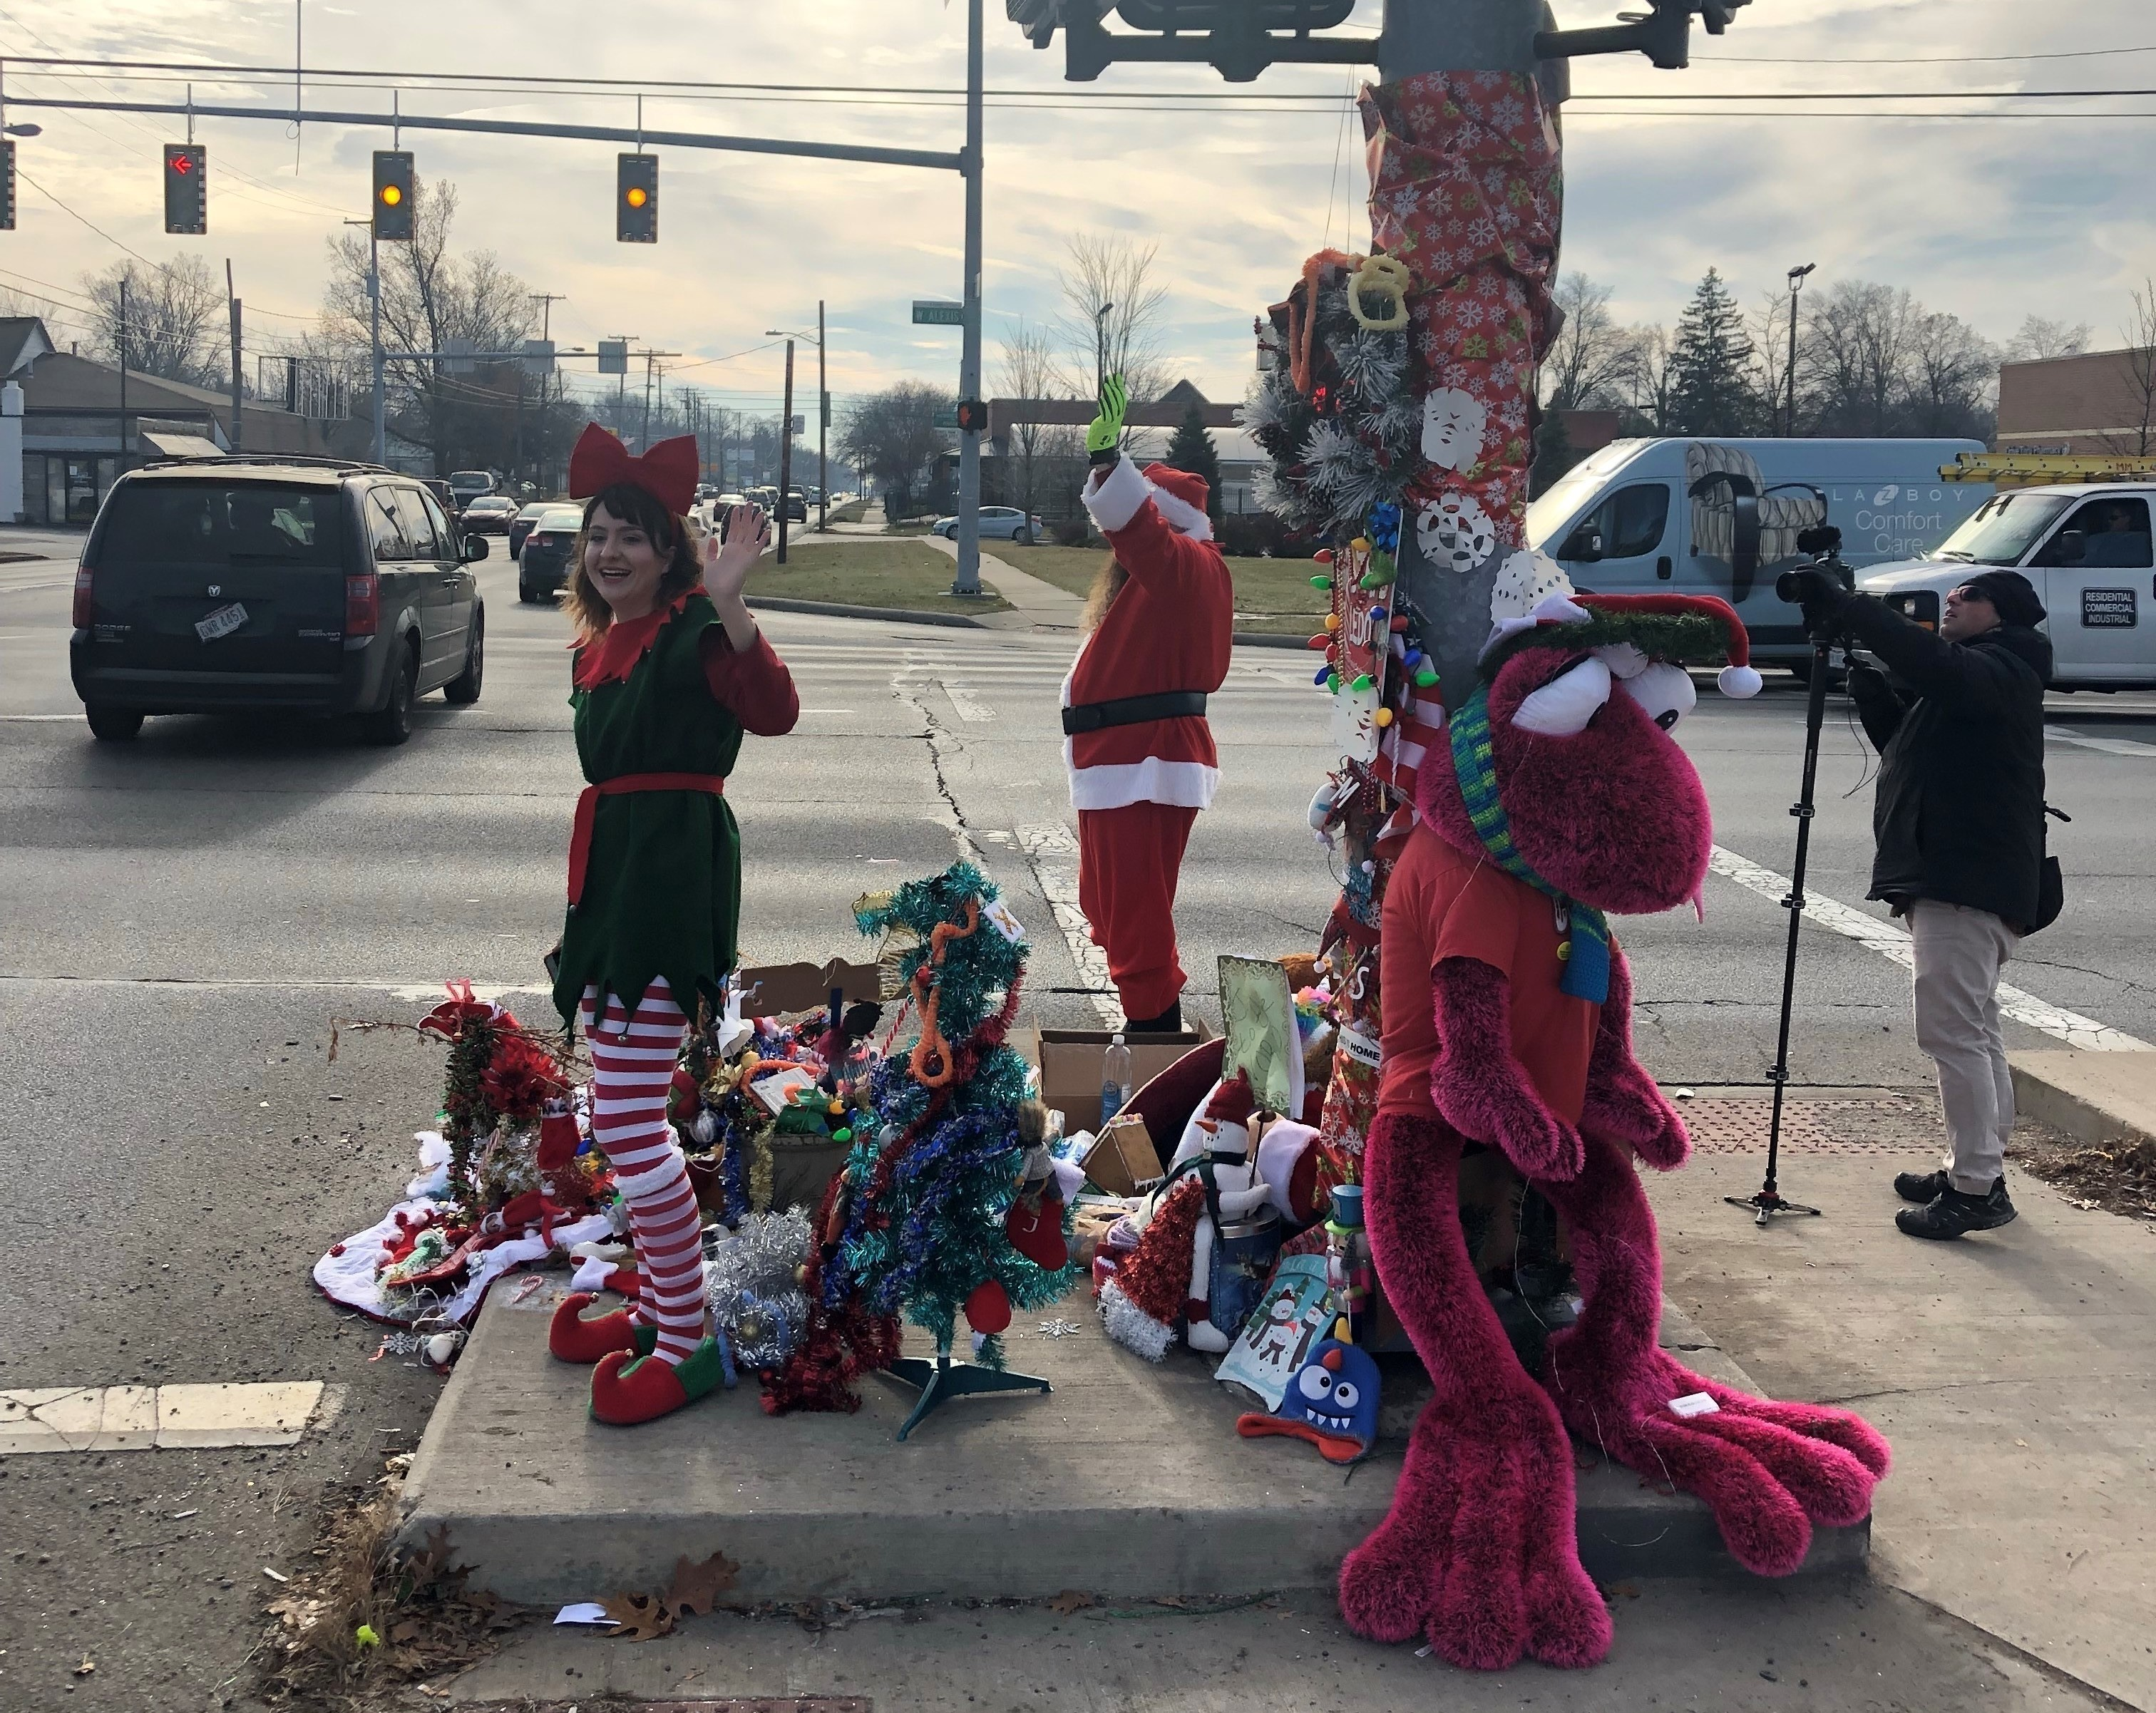 A Weed Grows In Toledo, And Residents Hang Their Christmas Hopes